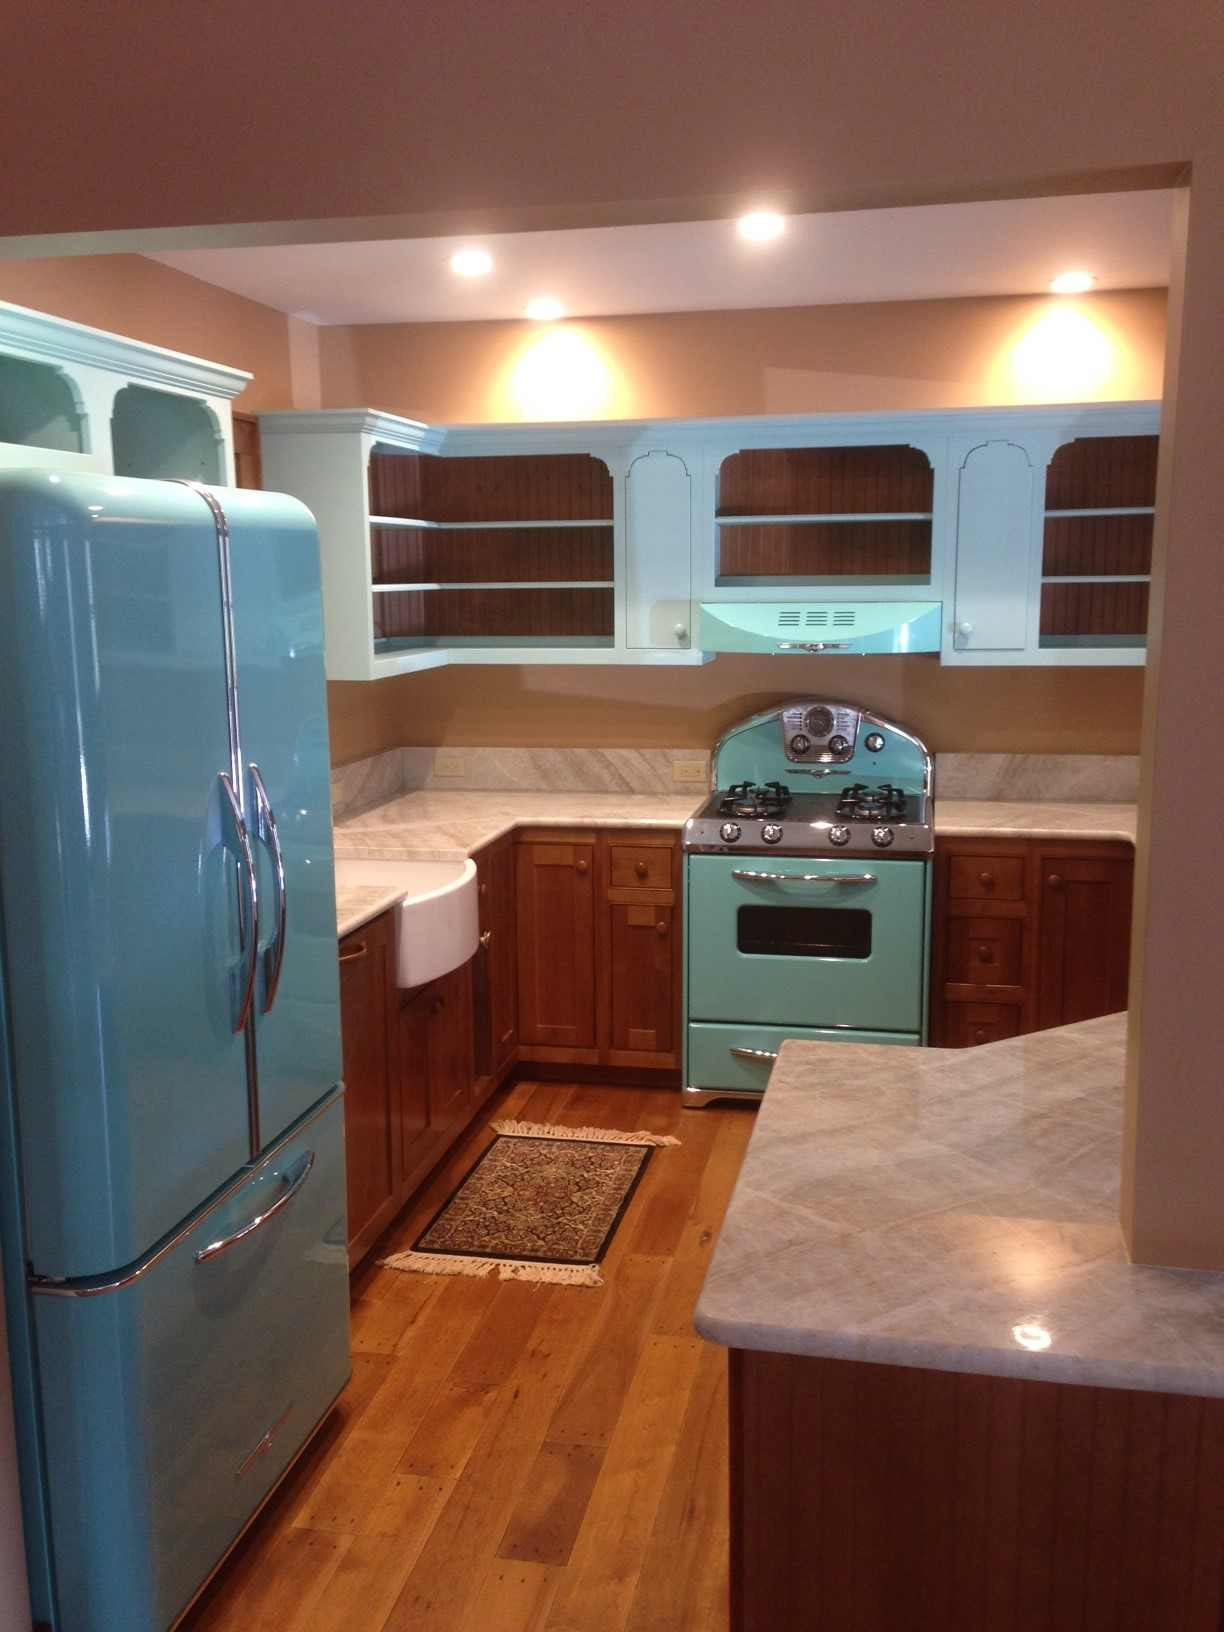 Painted 60s Kitchen Cabinets Kitchens By Joe Morgan Custom Cabinetry Franklin Nc